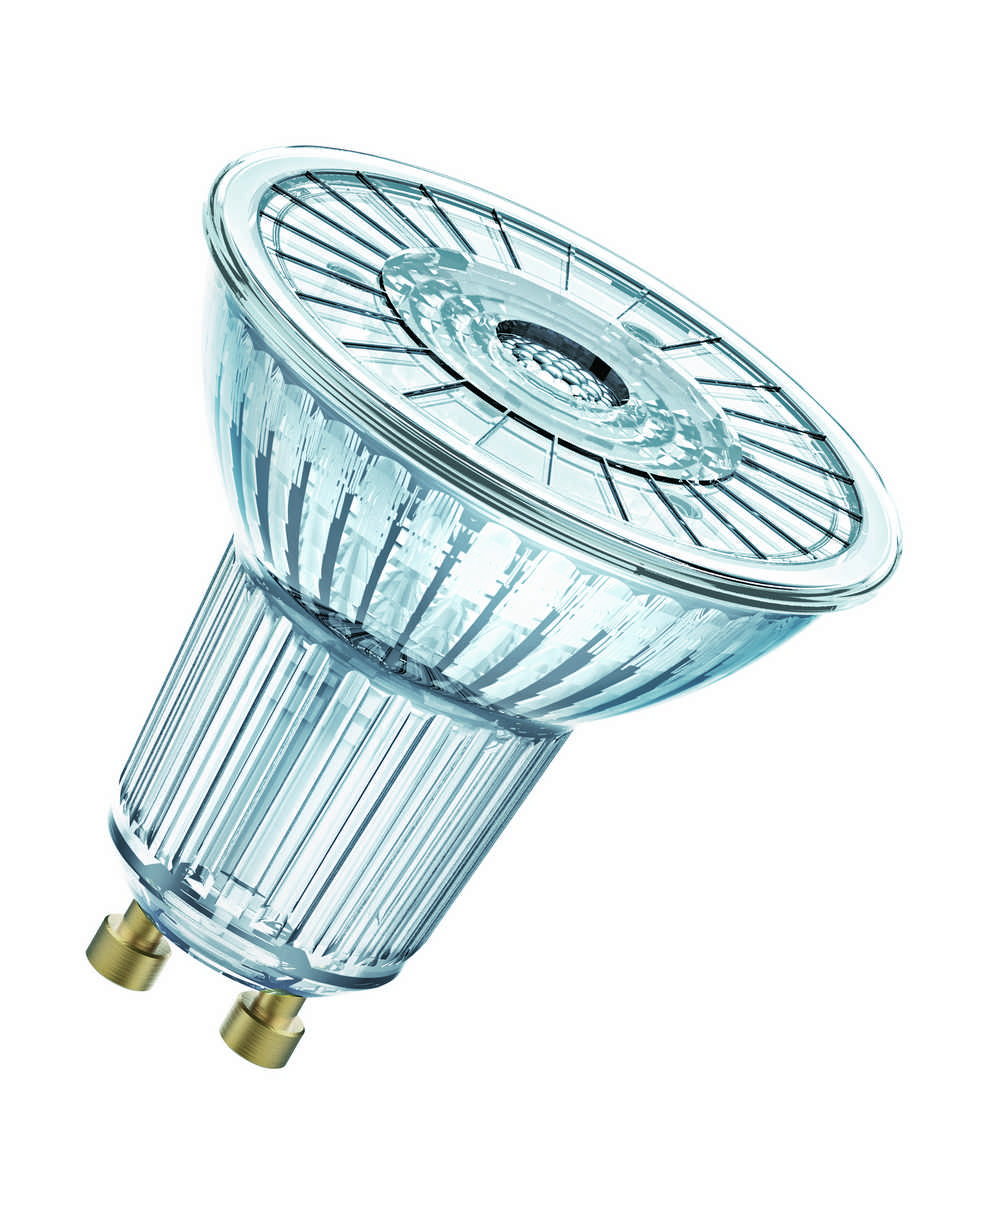 LED STAR GU10 2.6W WW 2ST